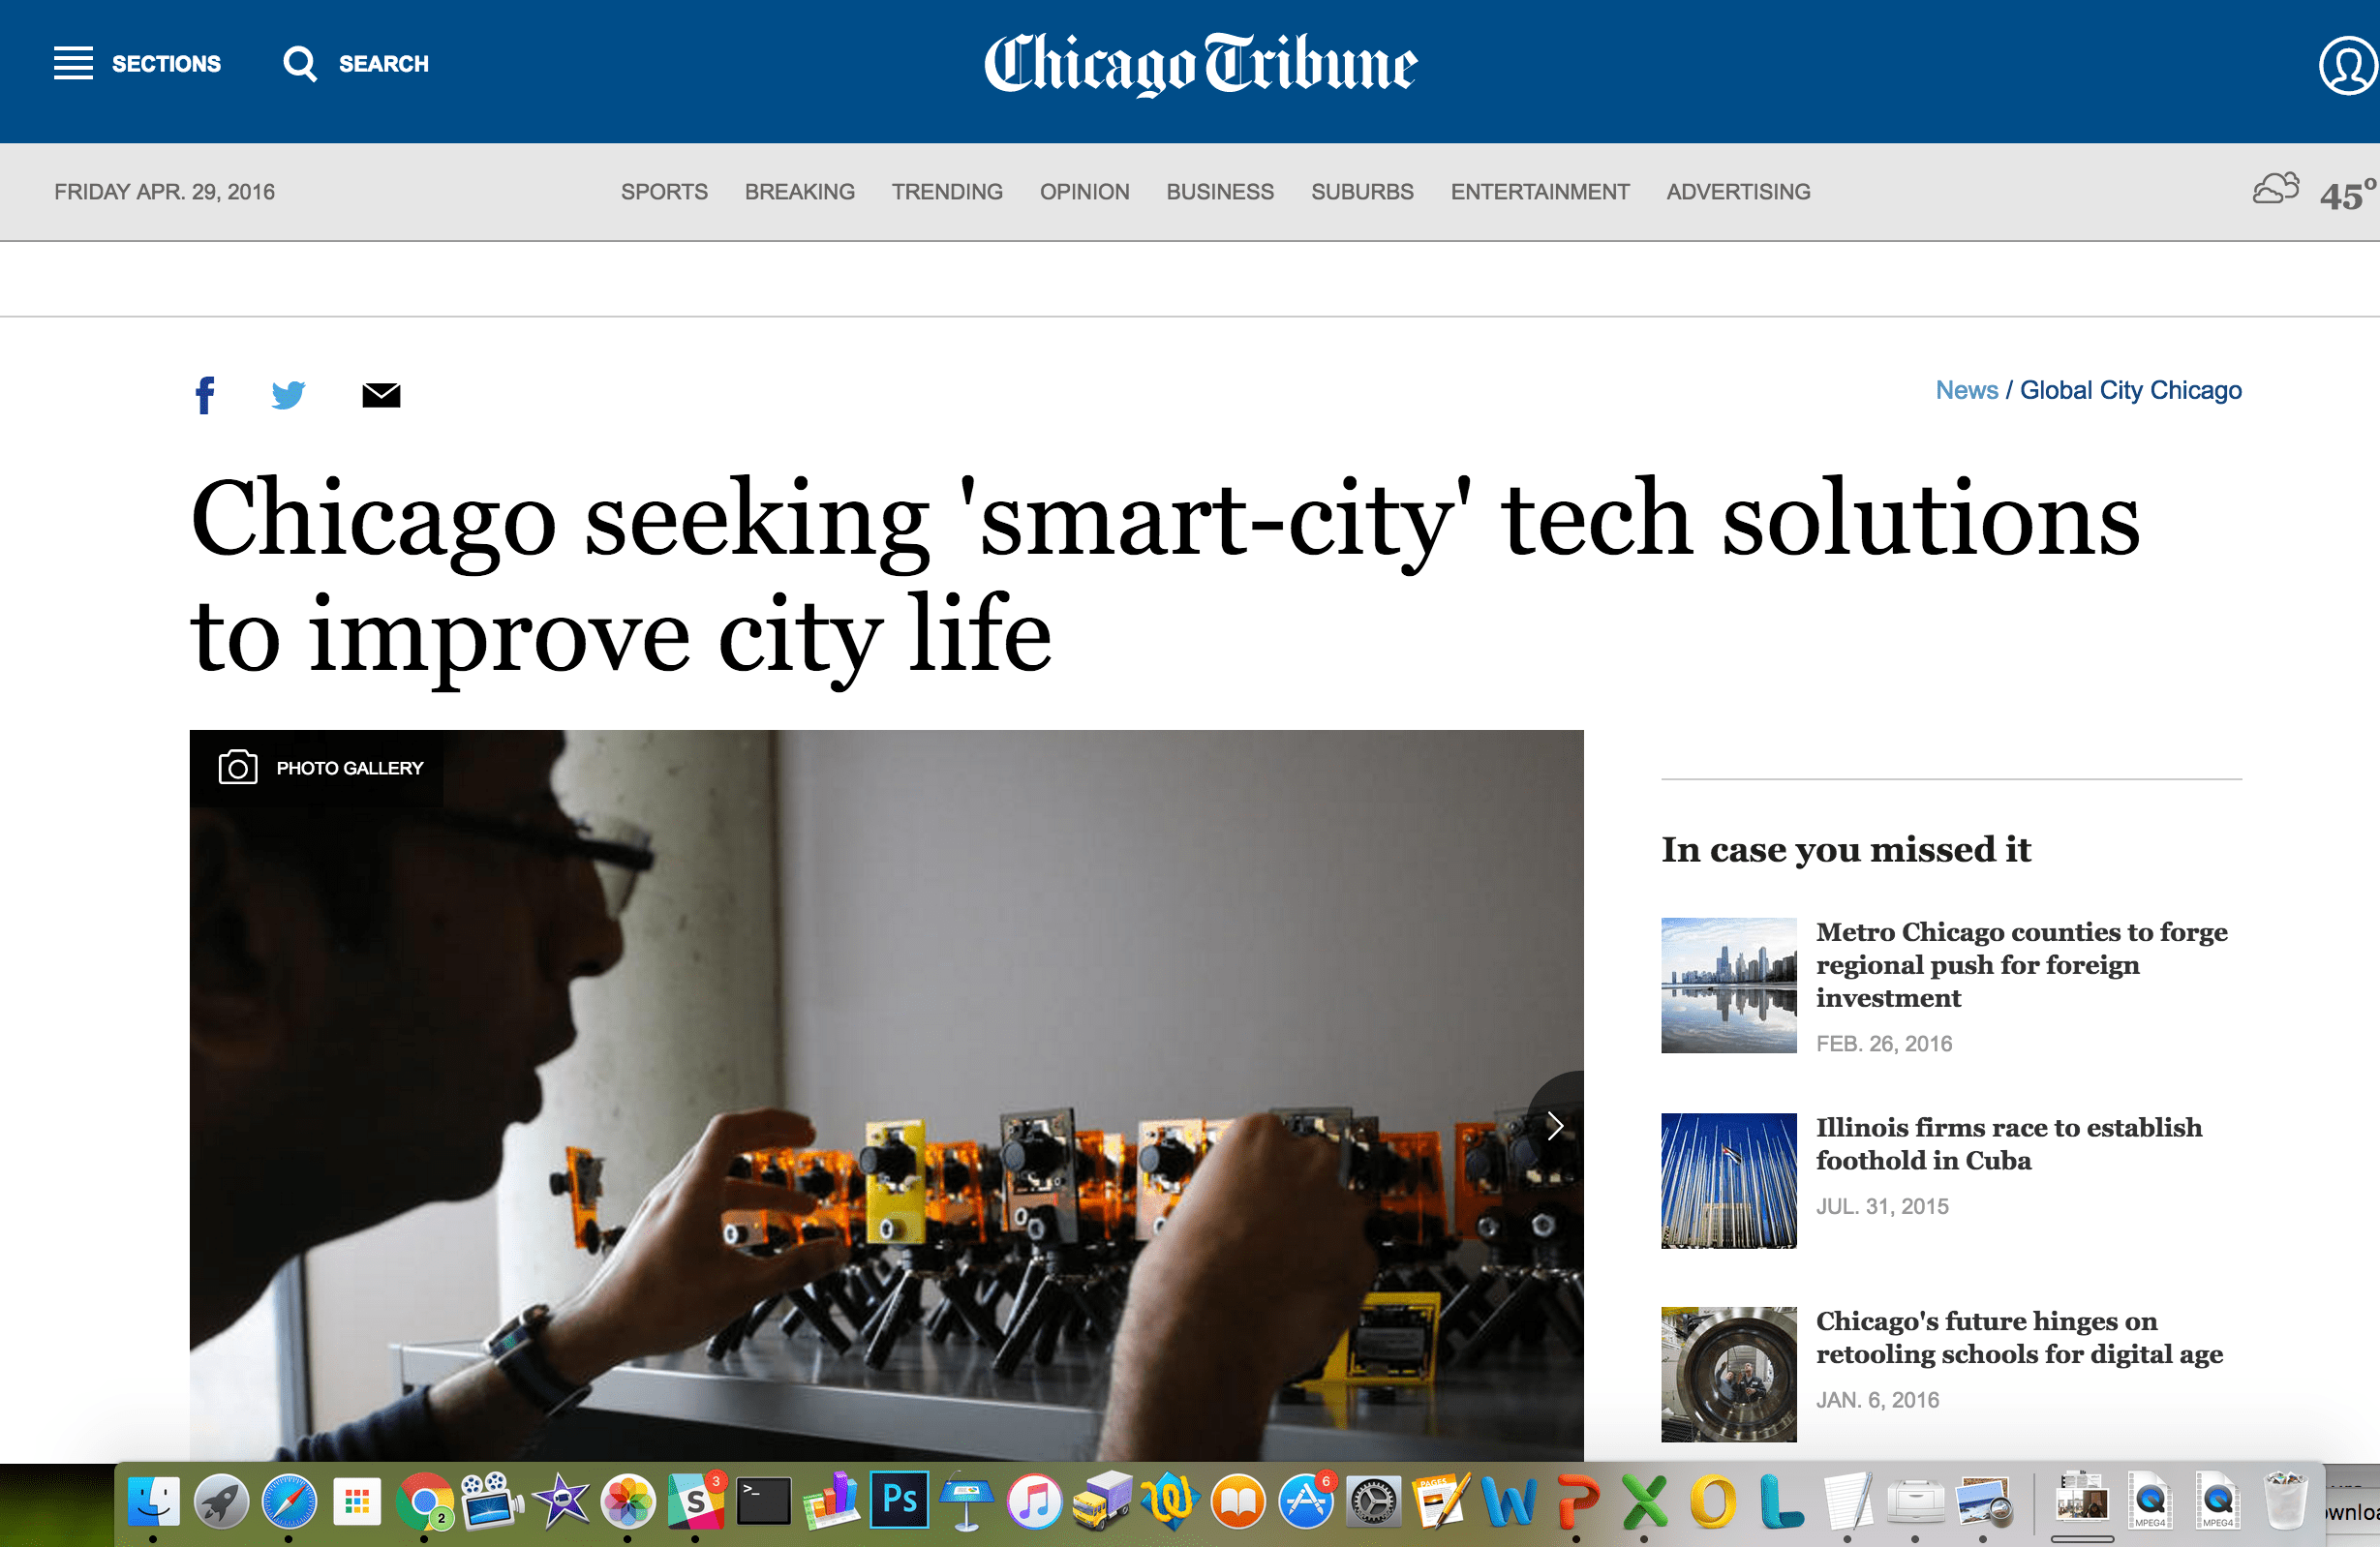 News Article: Chicago seeking 'smart-city' tech solutions to